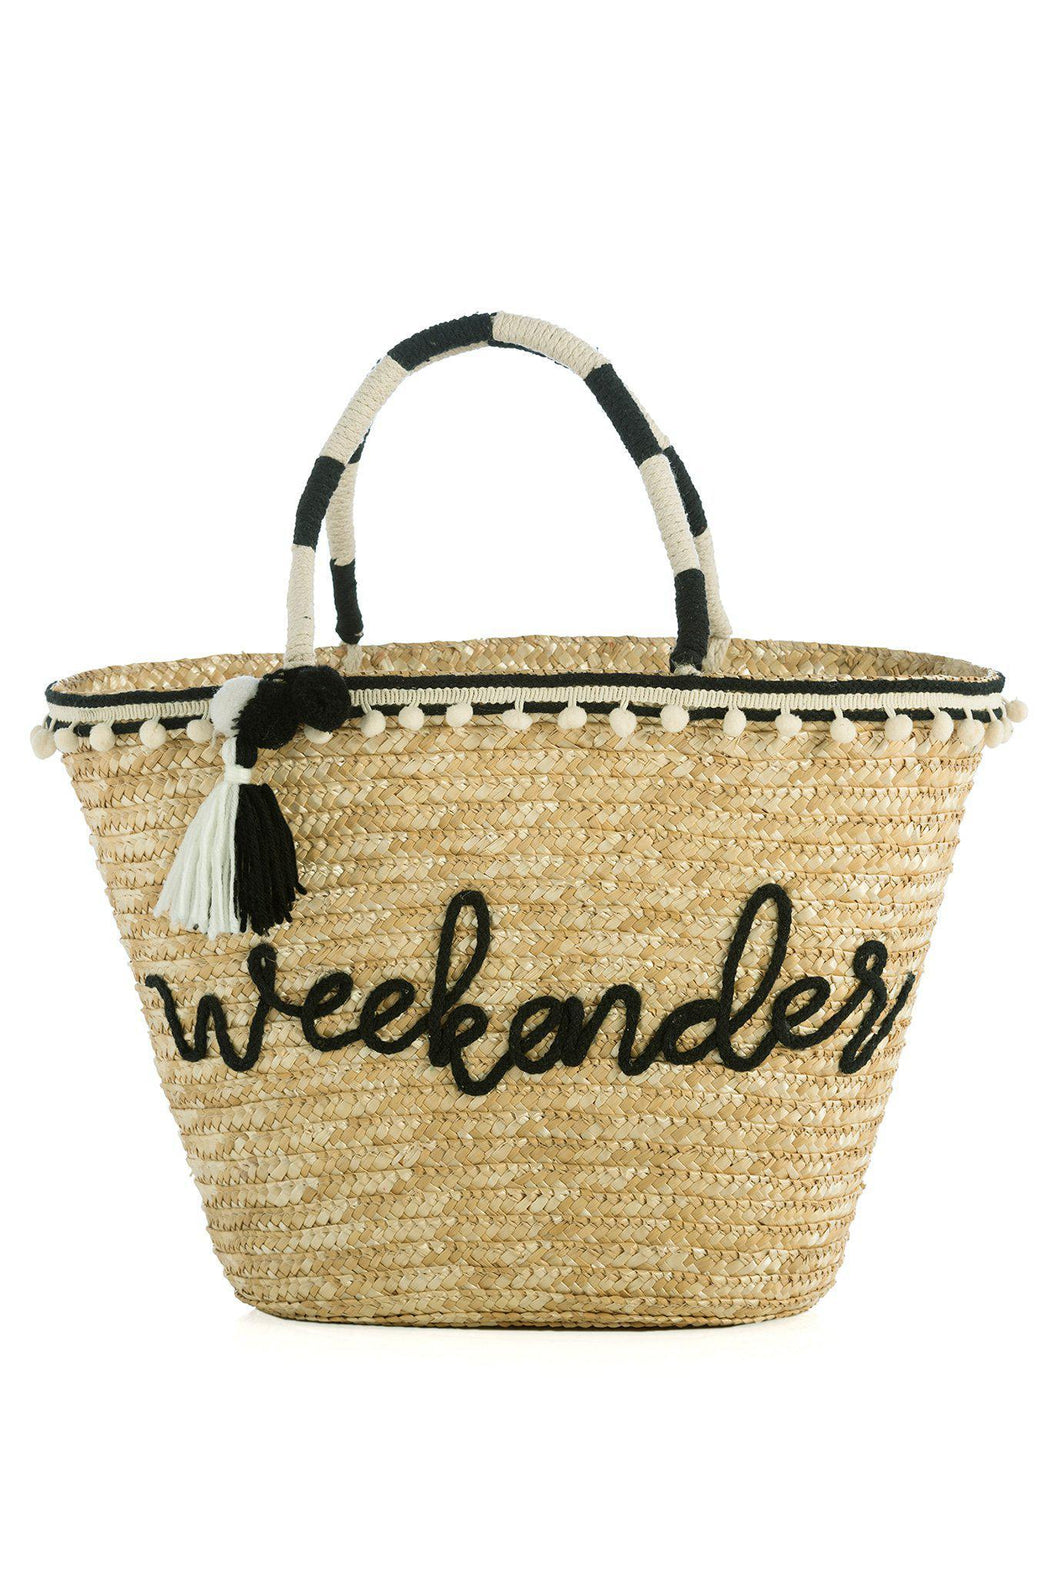 Weekender Straw Tote Bag on white background